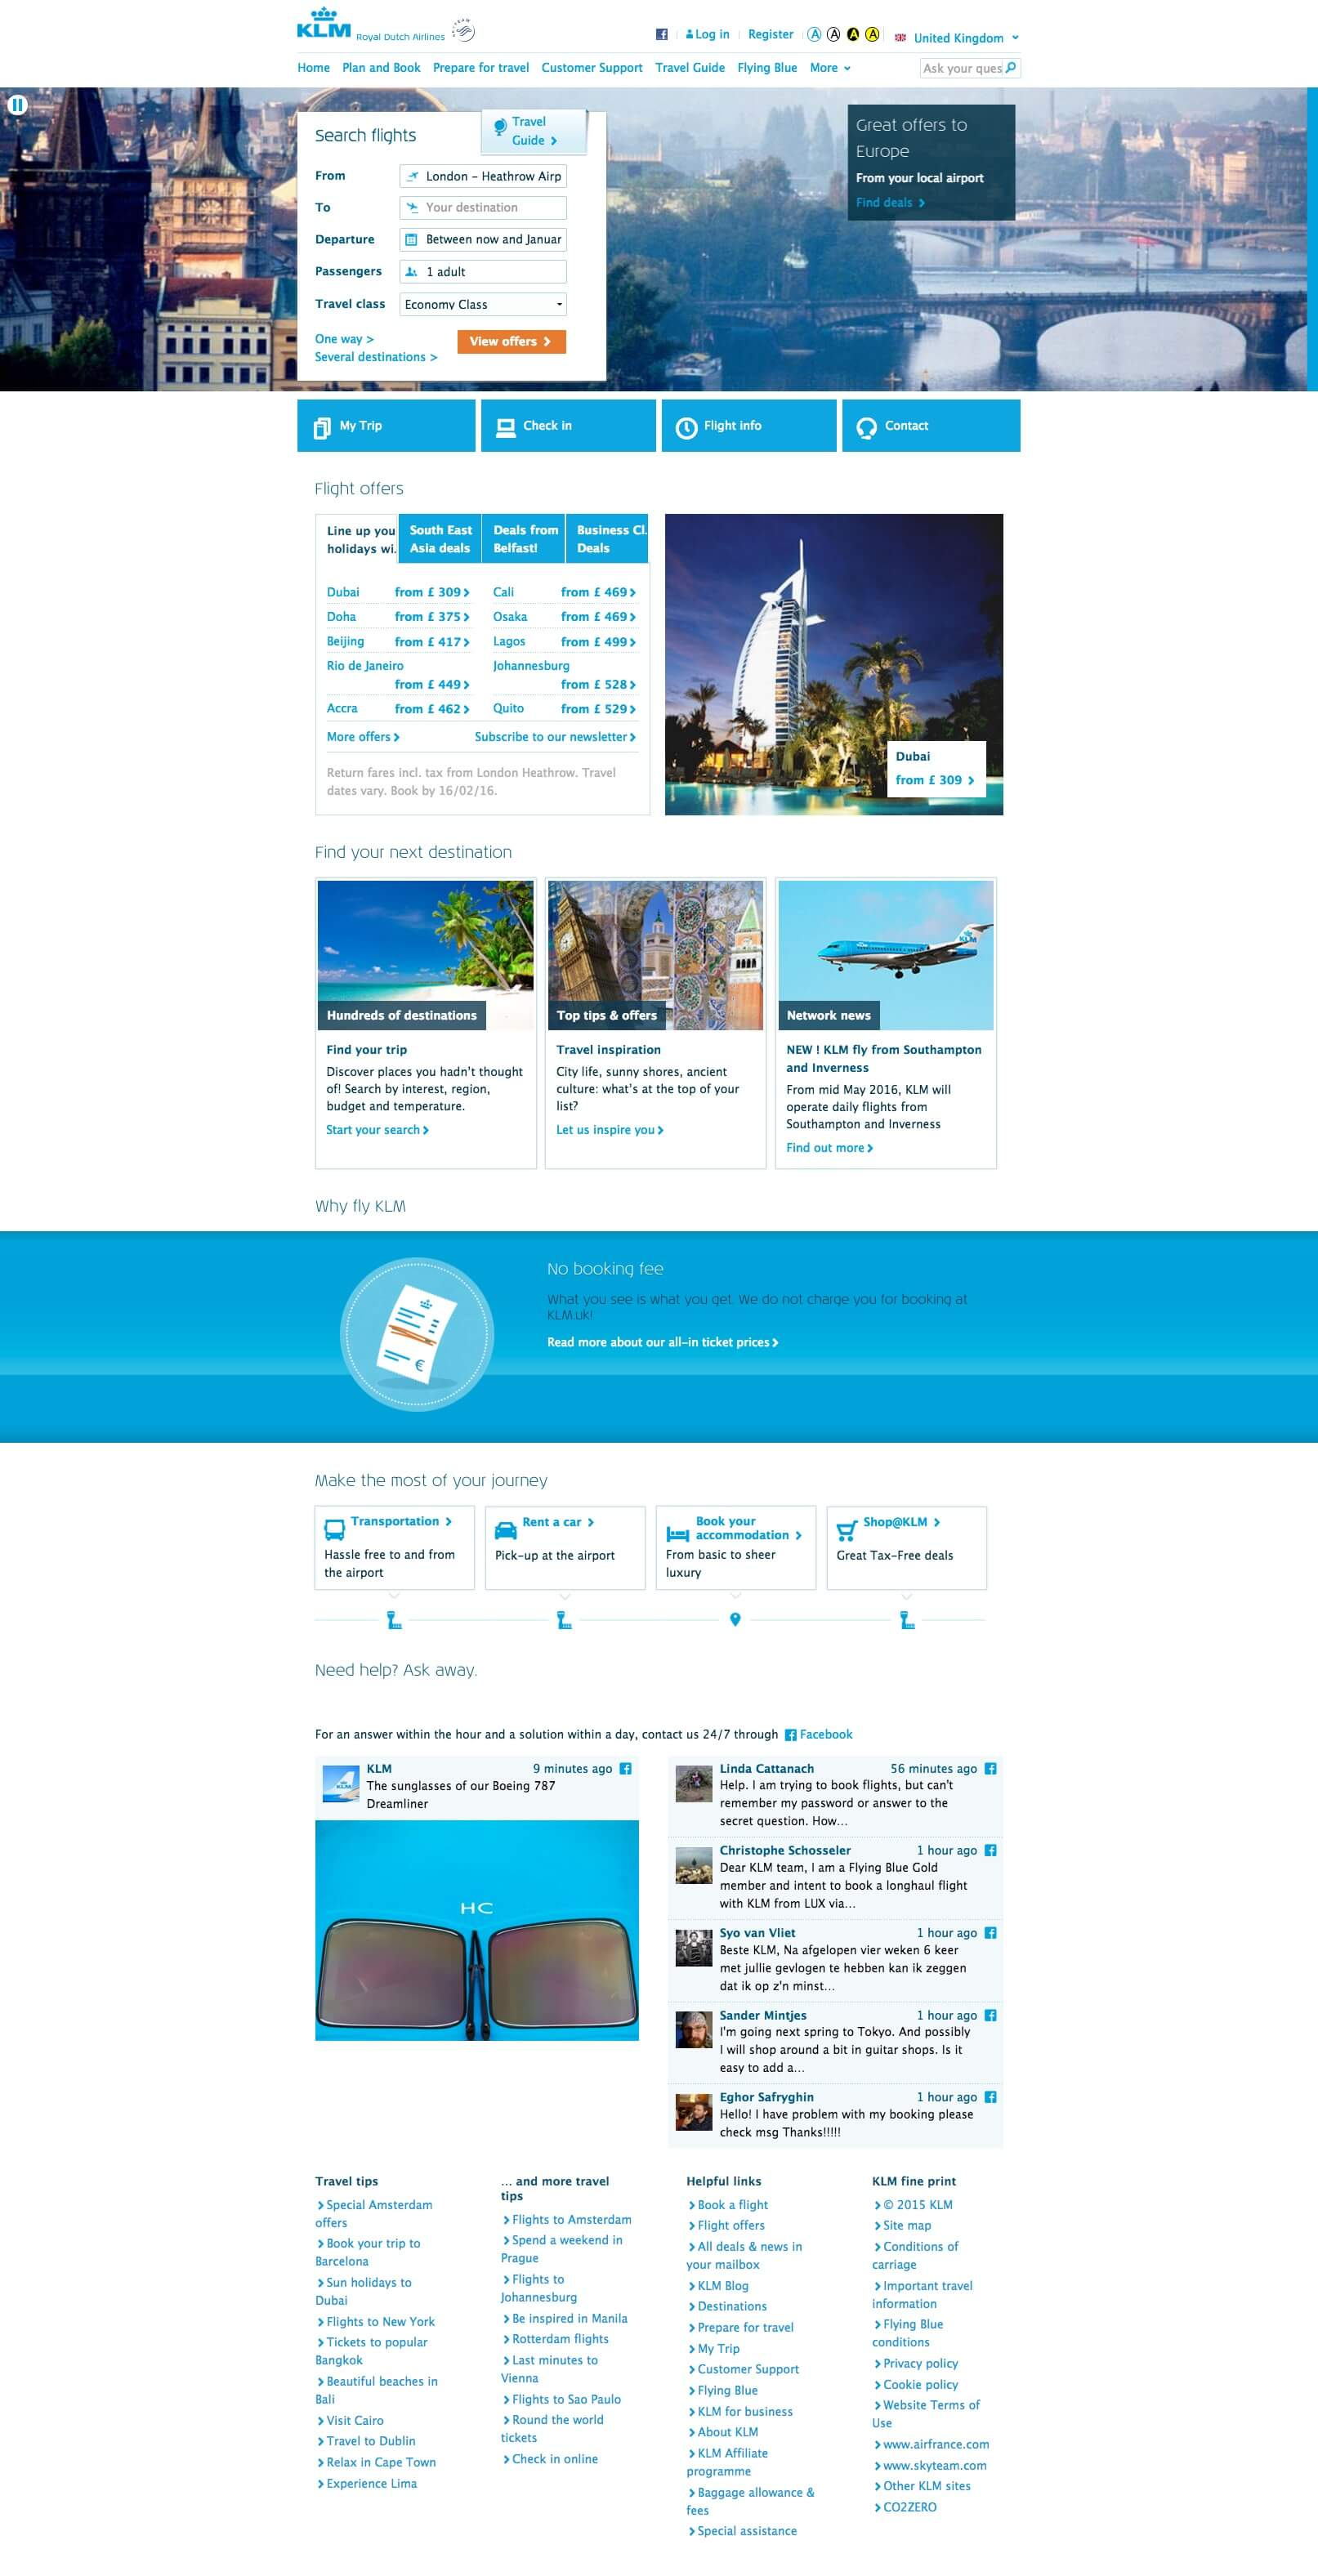 What makes a good airline website - KLM